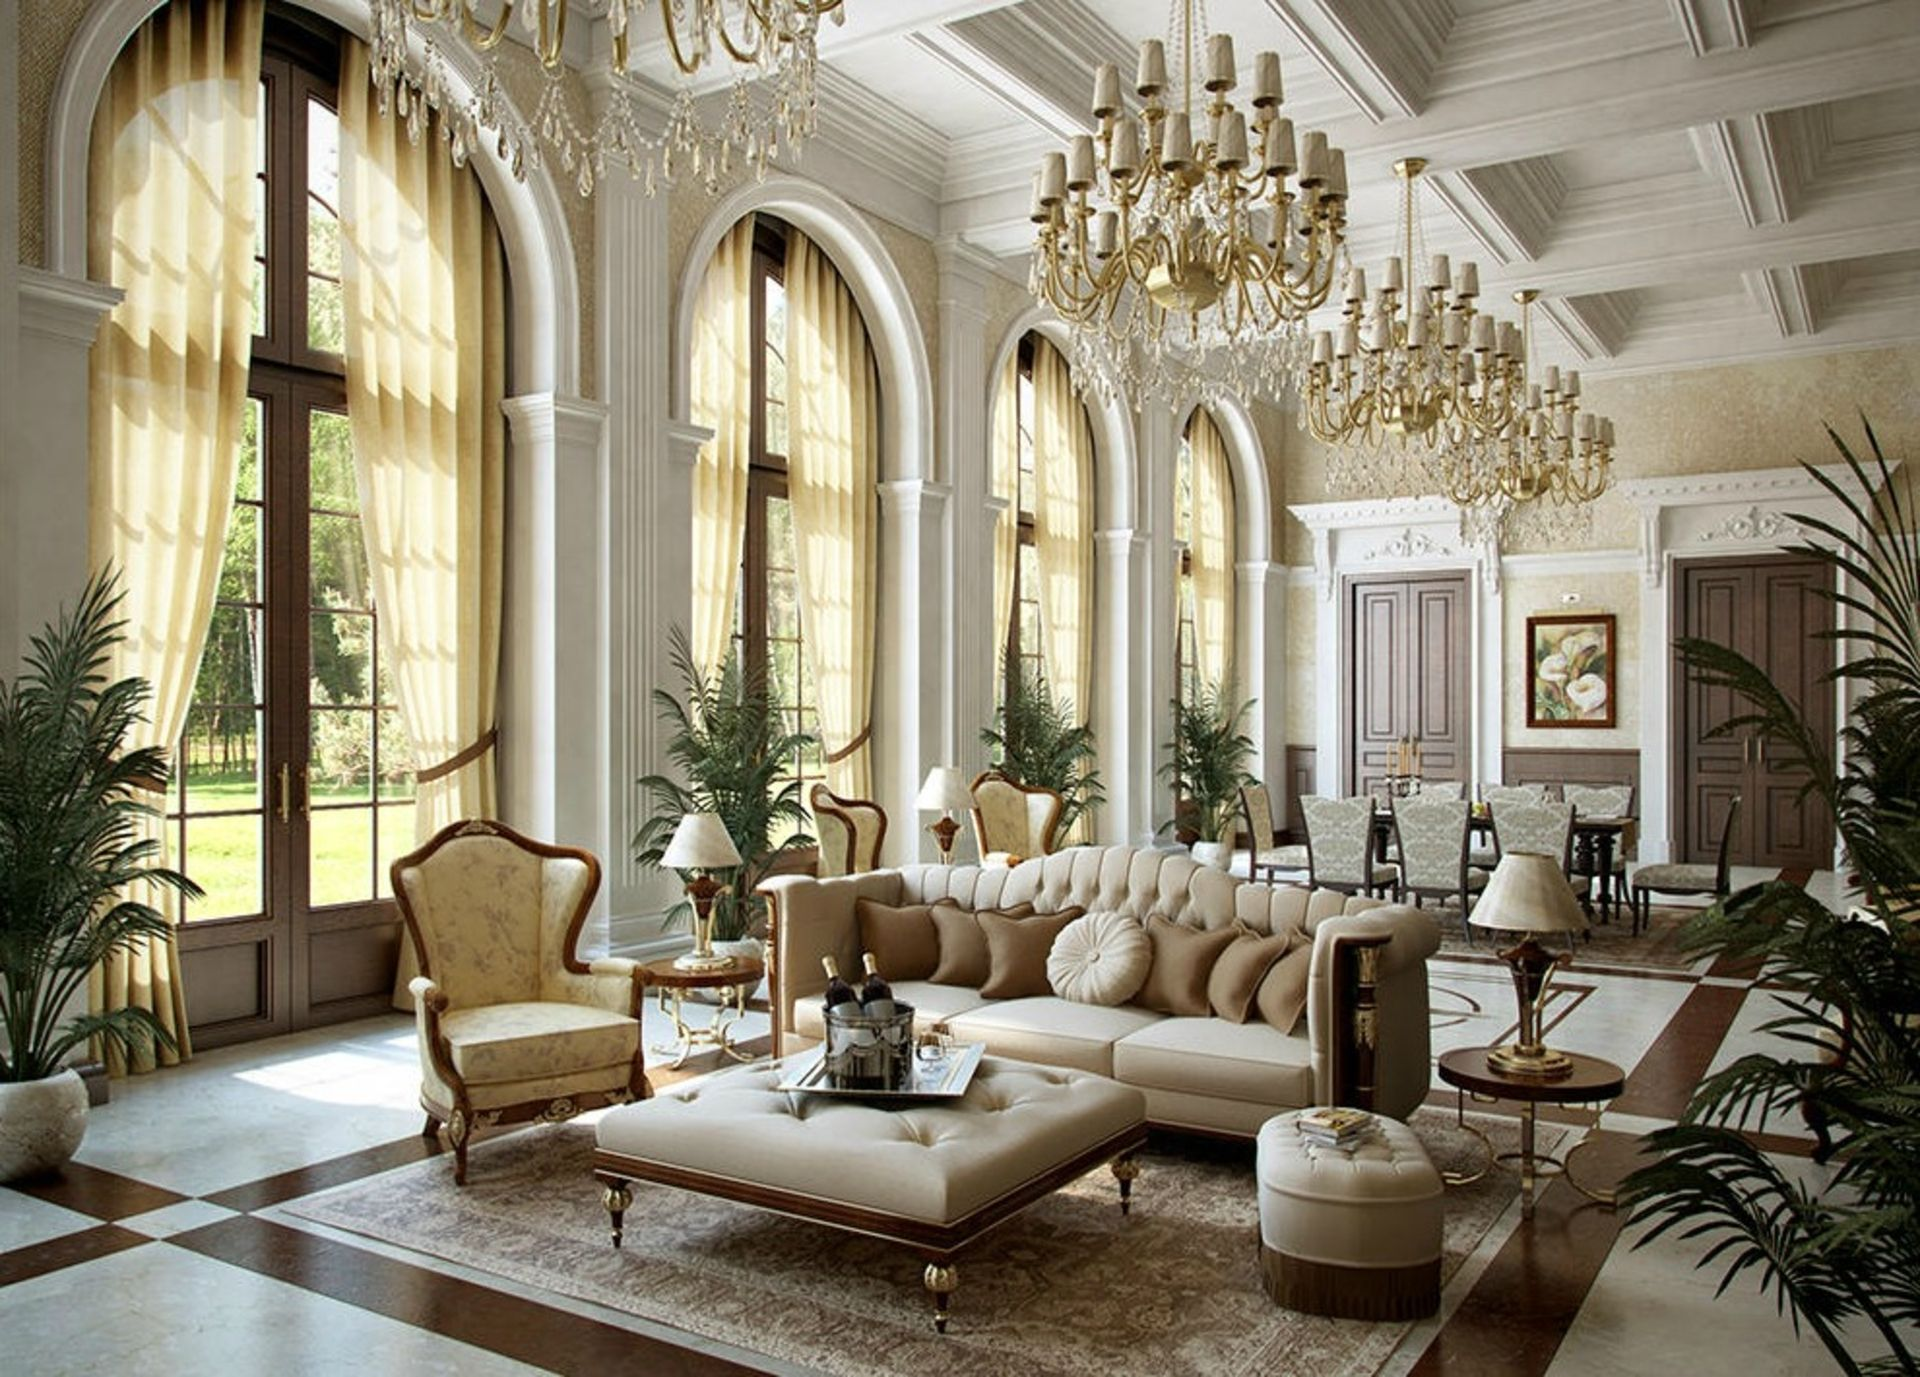 Cool art deco inspired furniture ideas in living room traditional - Majestic Luxurious Interior Ideas For Your Modern Home Beautiful Living Room Design With Luxury Classic Interior Luxurious Chandelier Brown Sofas And